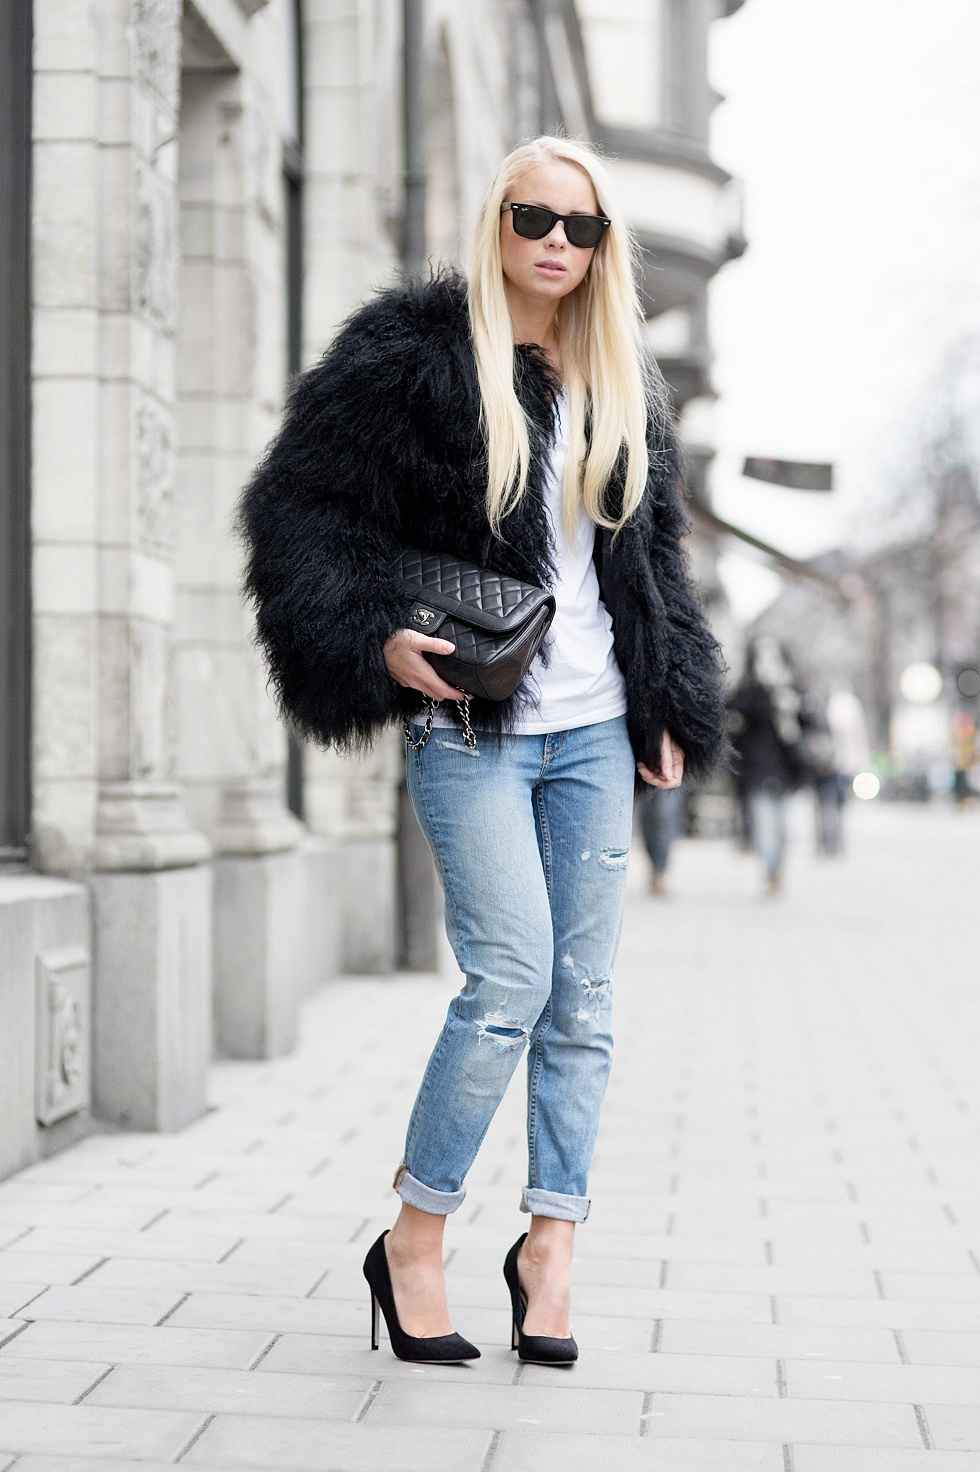 600d7b404f5a Ingrid Holm is wearing a white shaggy jacket from Lindex. Victoria  Tornegren is wearing a black faux fur outfit from Portable . Fluffy Trend  ...